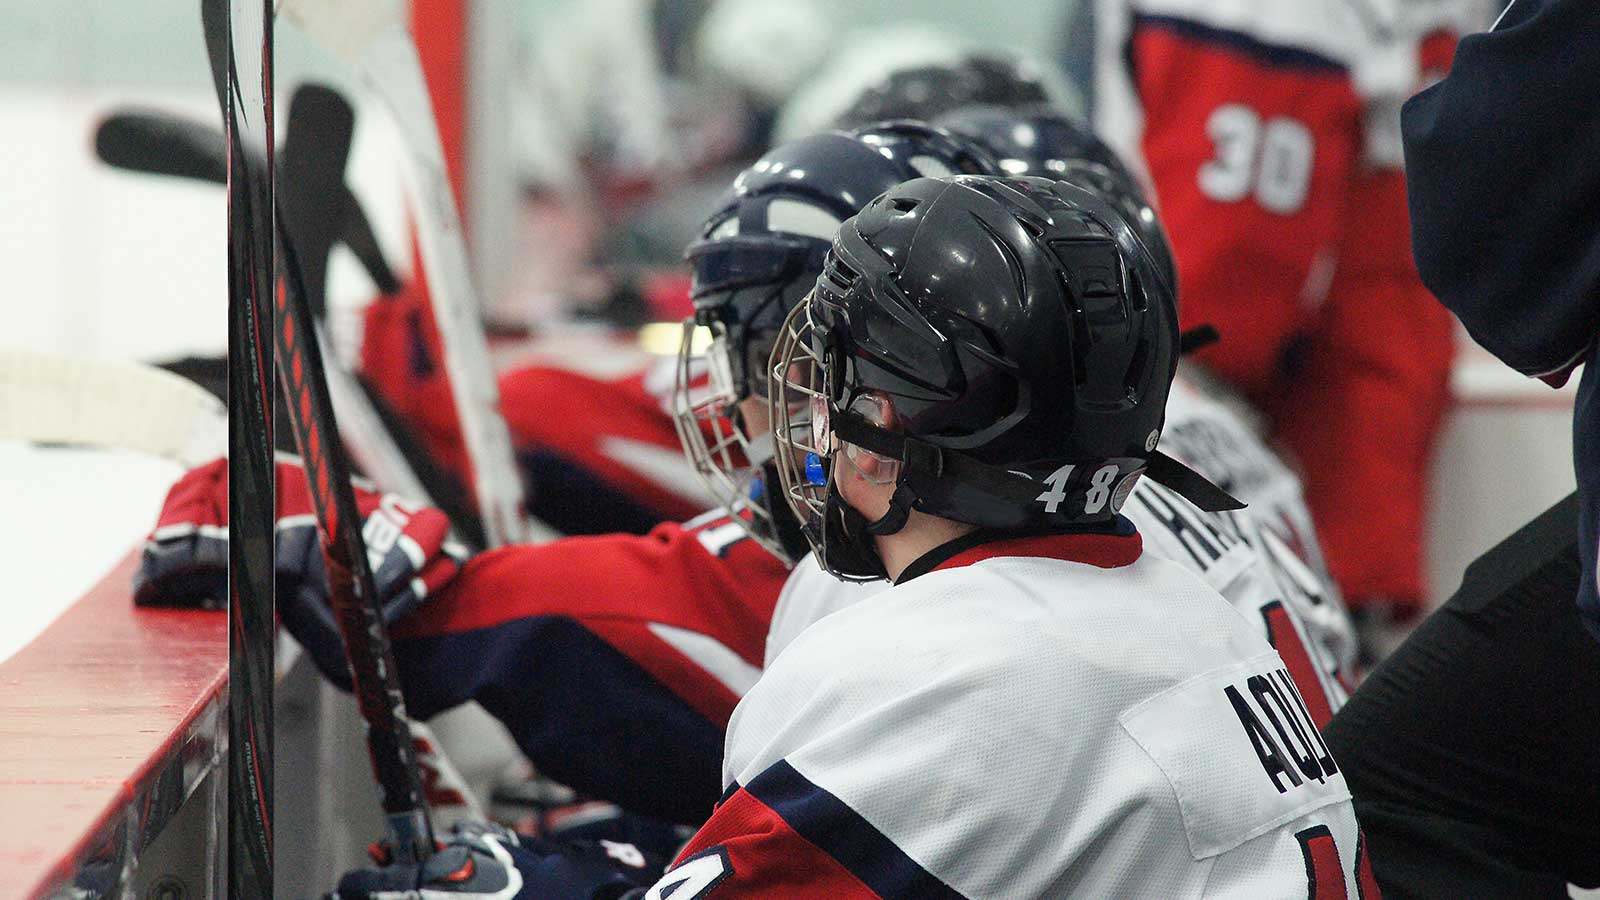 Players on the bench at a bantam hockey tryout